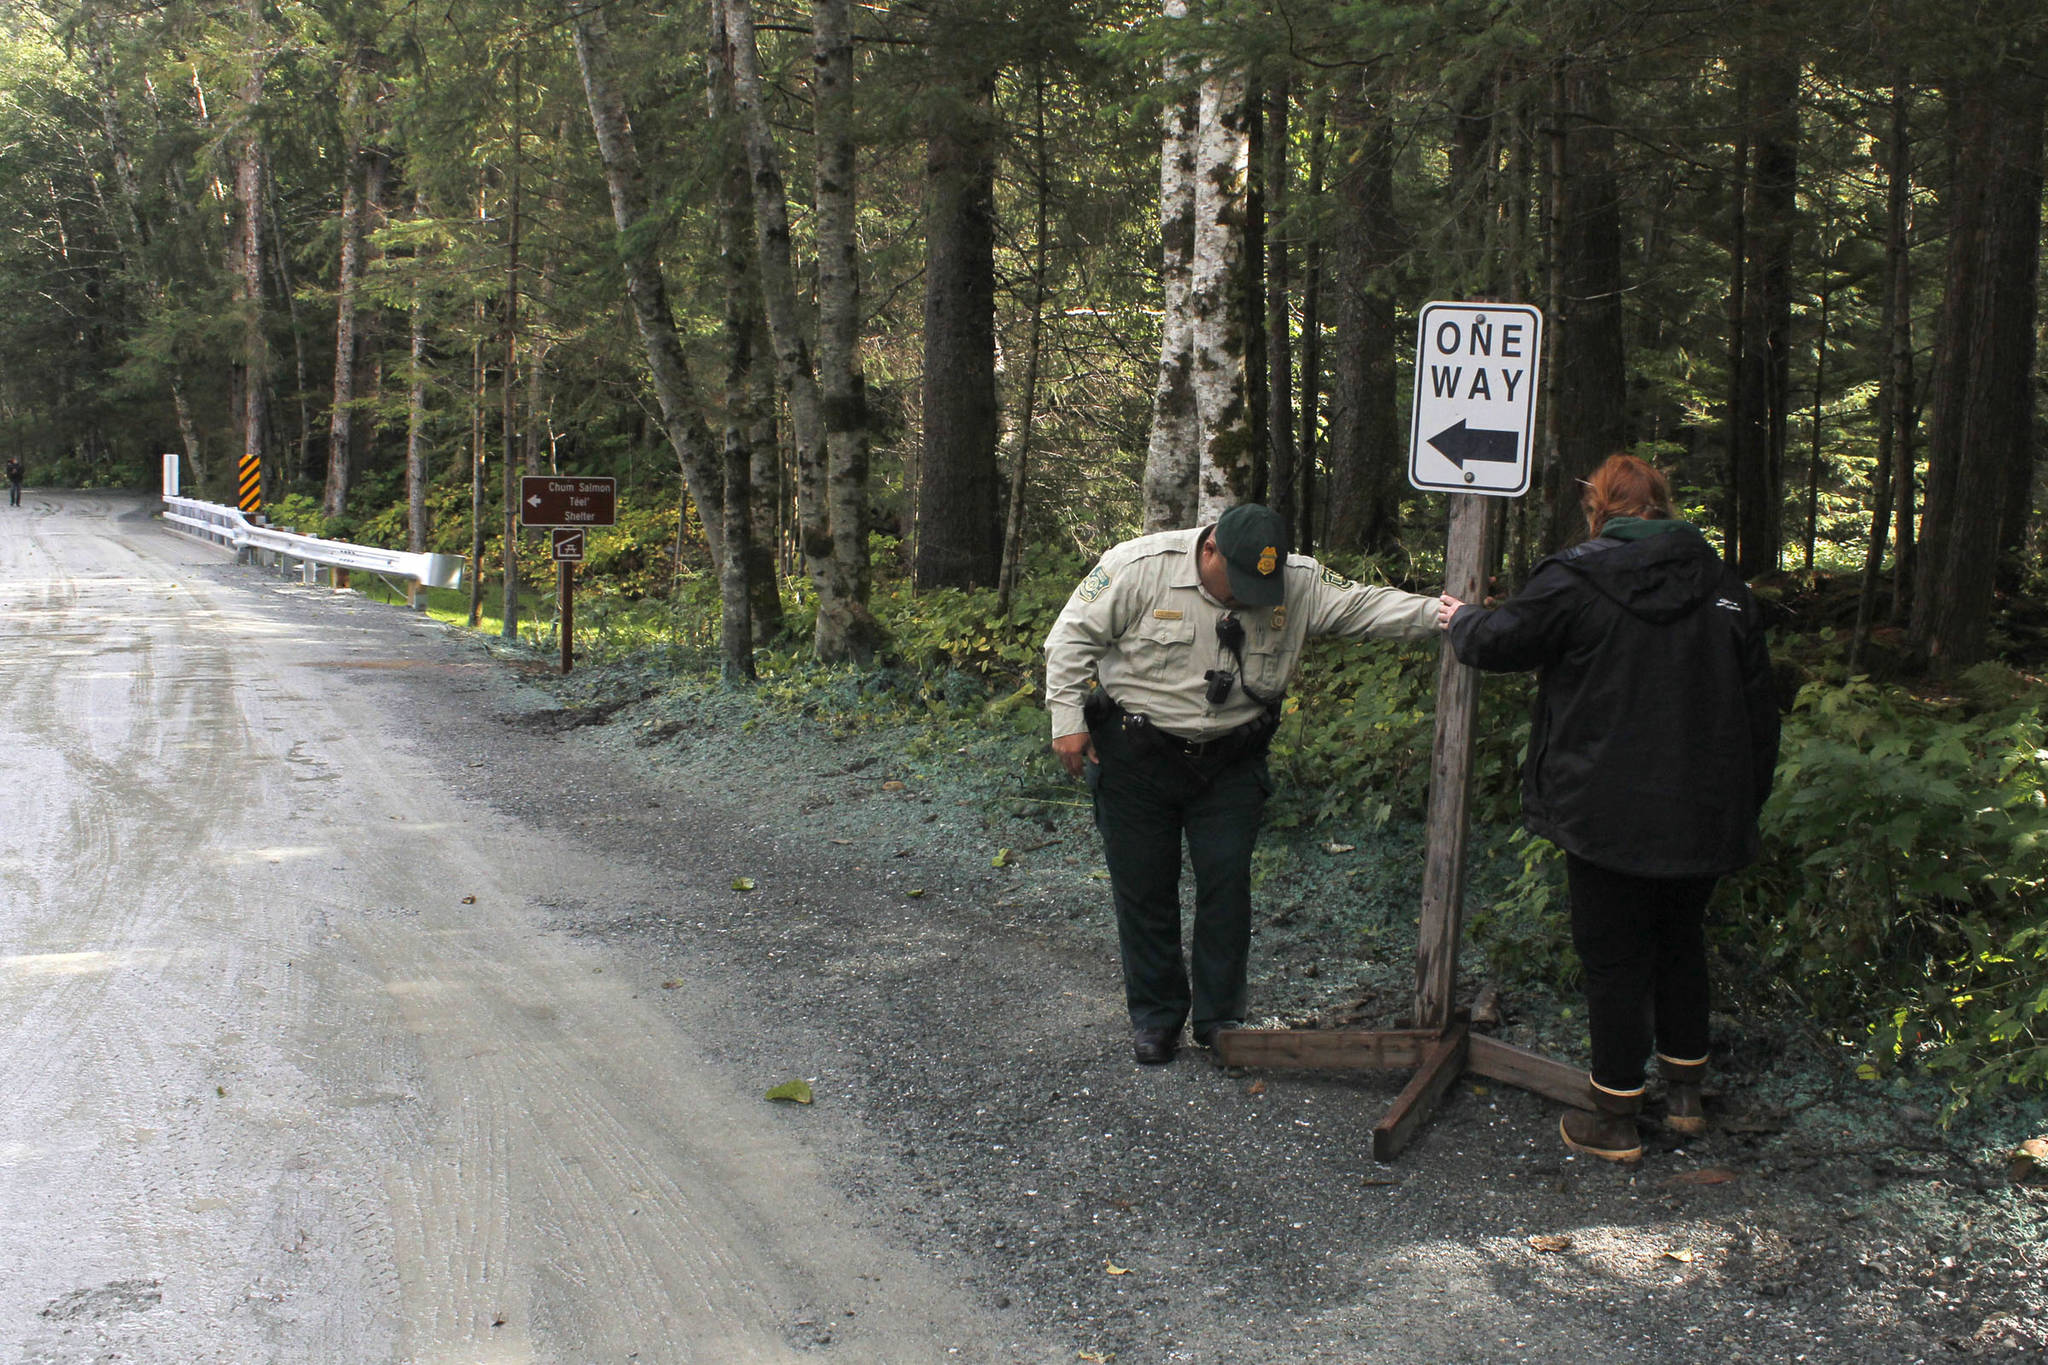 U.S. Forest Service Officer Dave Zuniga and U.S. Forest Service Cabins and Recreation employee Caty Beckel place a road sign at the newly improved Lena Beach Recreation Area on Saturday, Sept. 1, 2018. (Alex McCarthy | Juneau Empire)